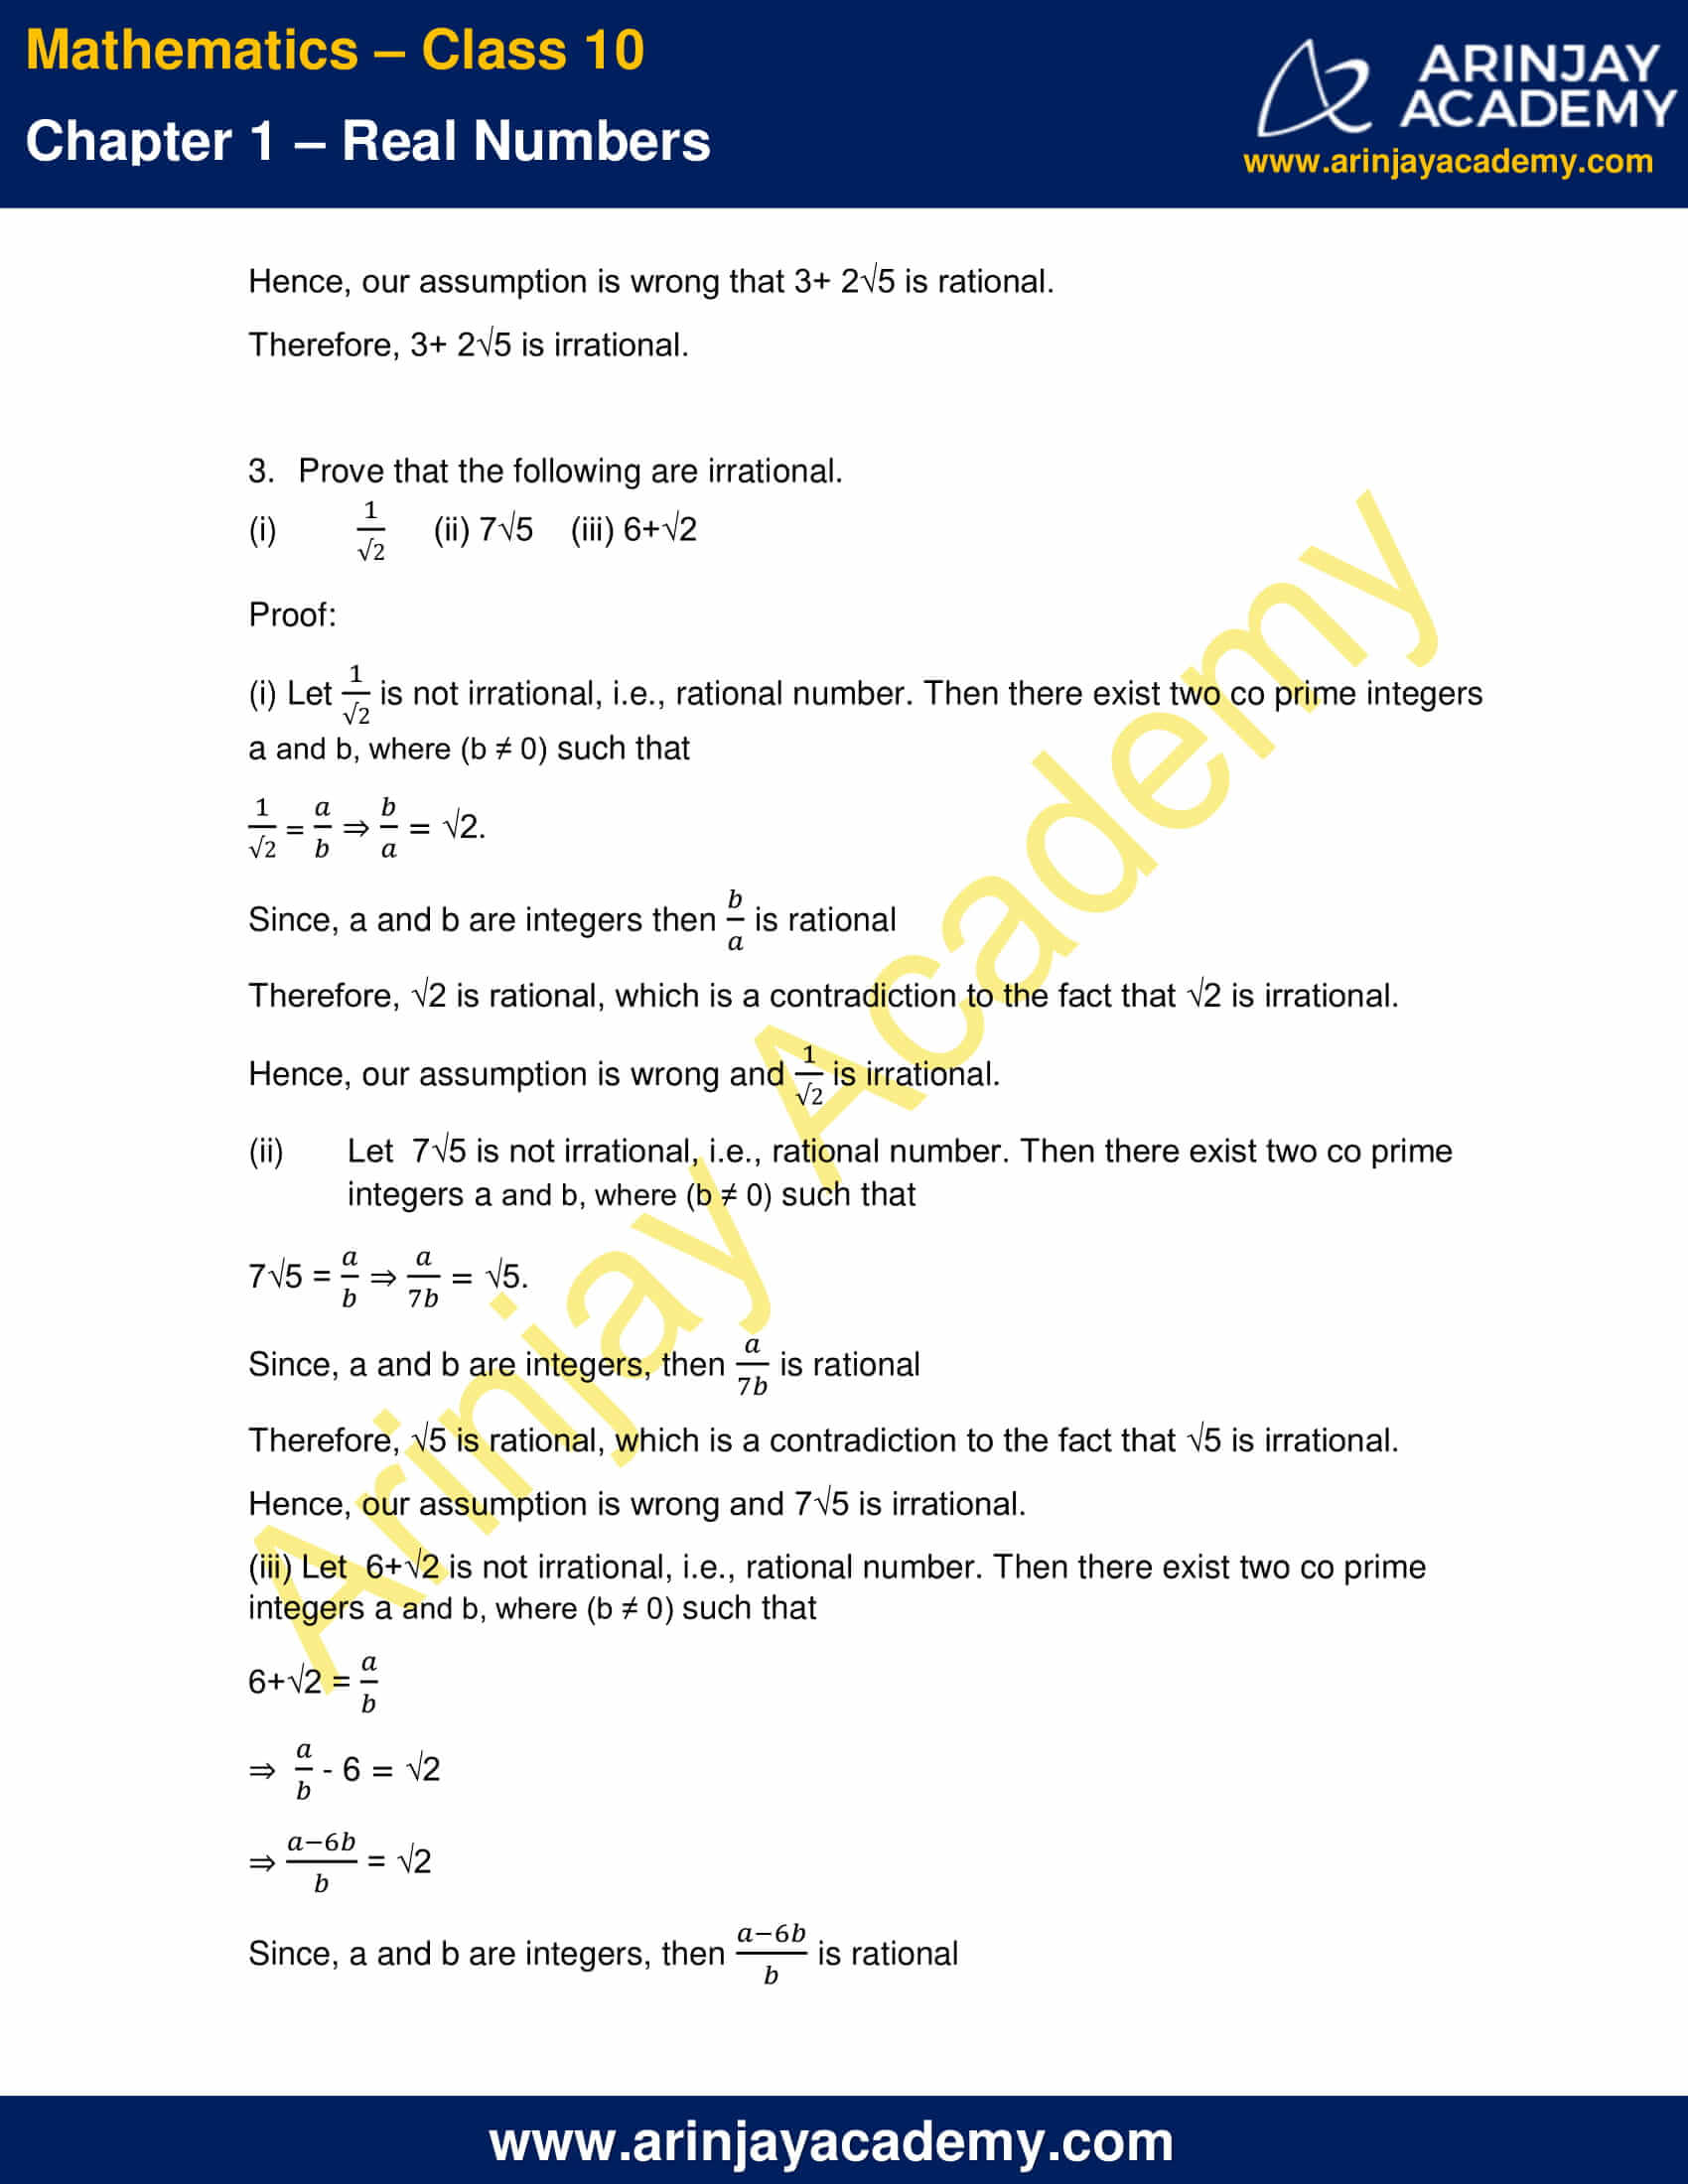 NCERT Solutions For Class 10 Maths Chapter 1 Exercise 1.3 Part 2